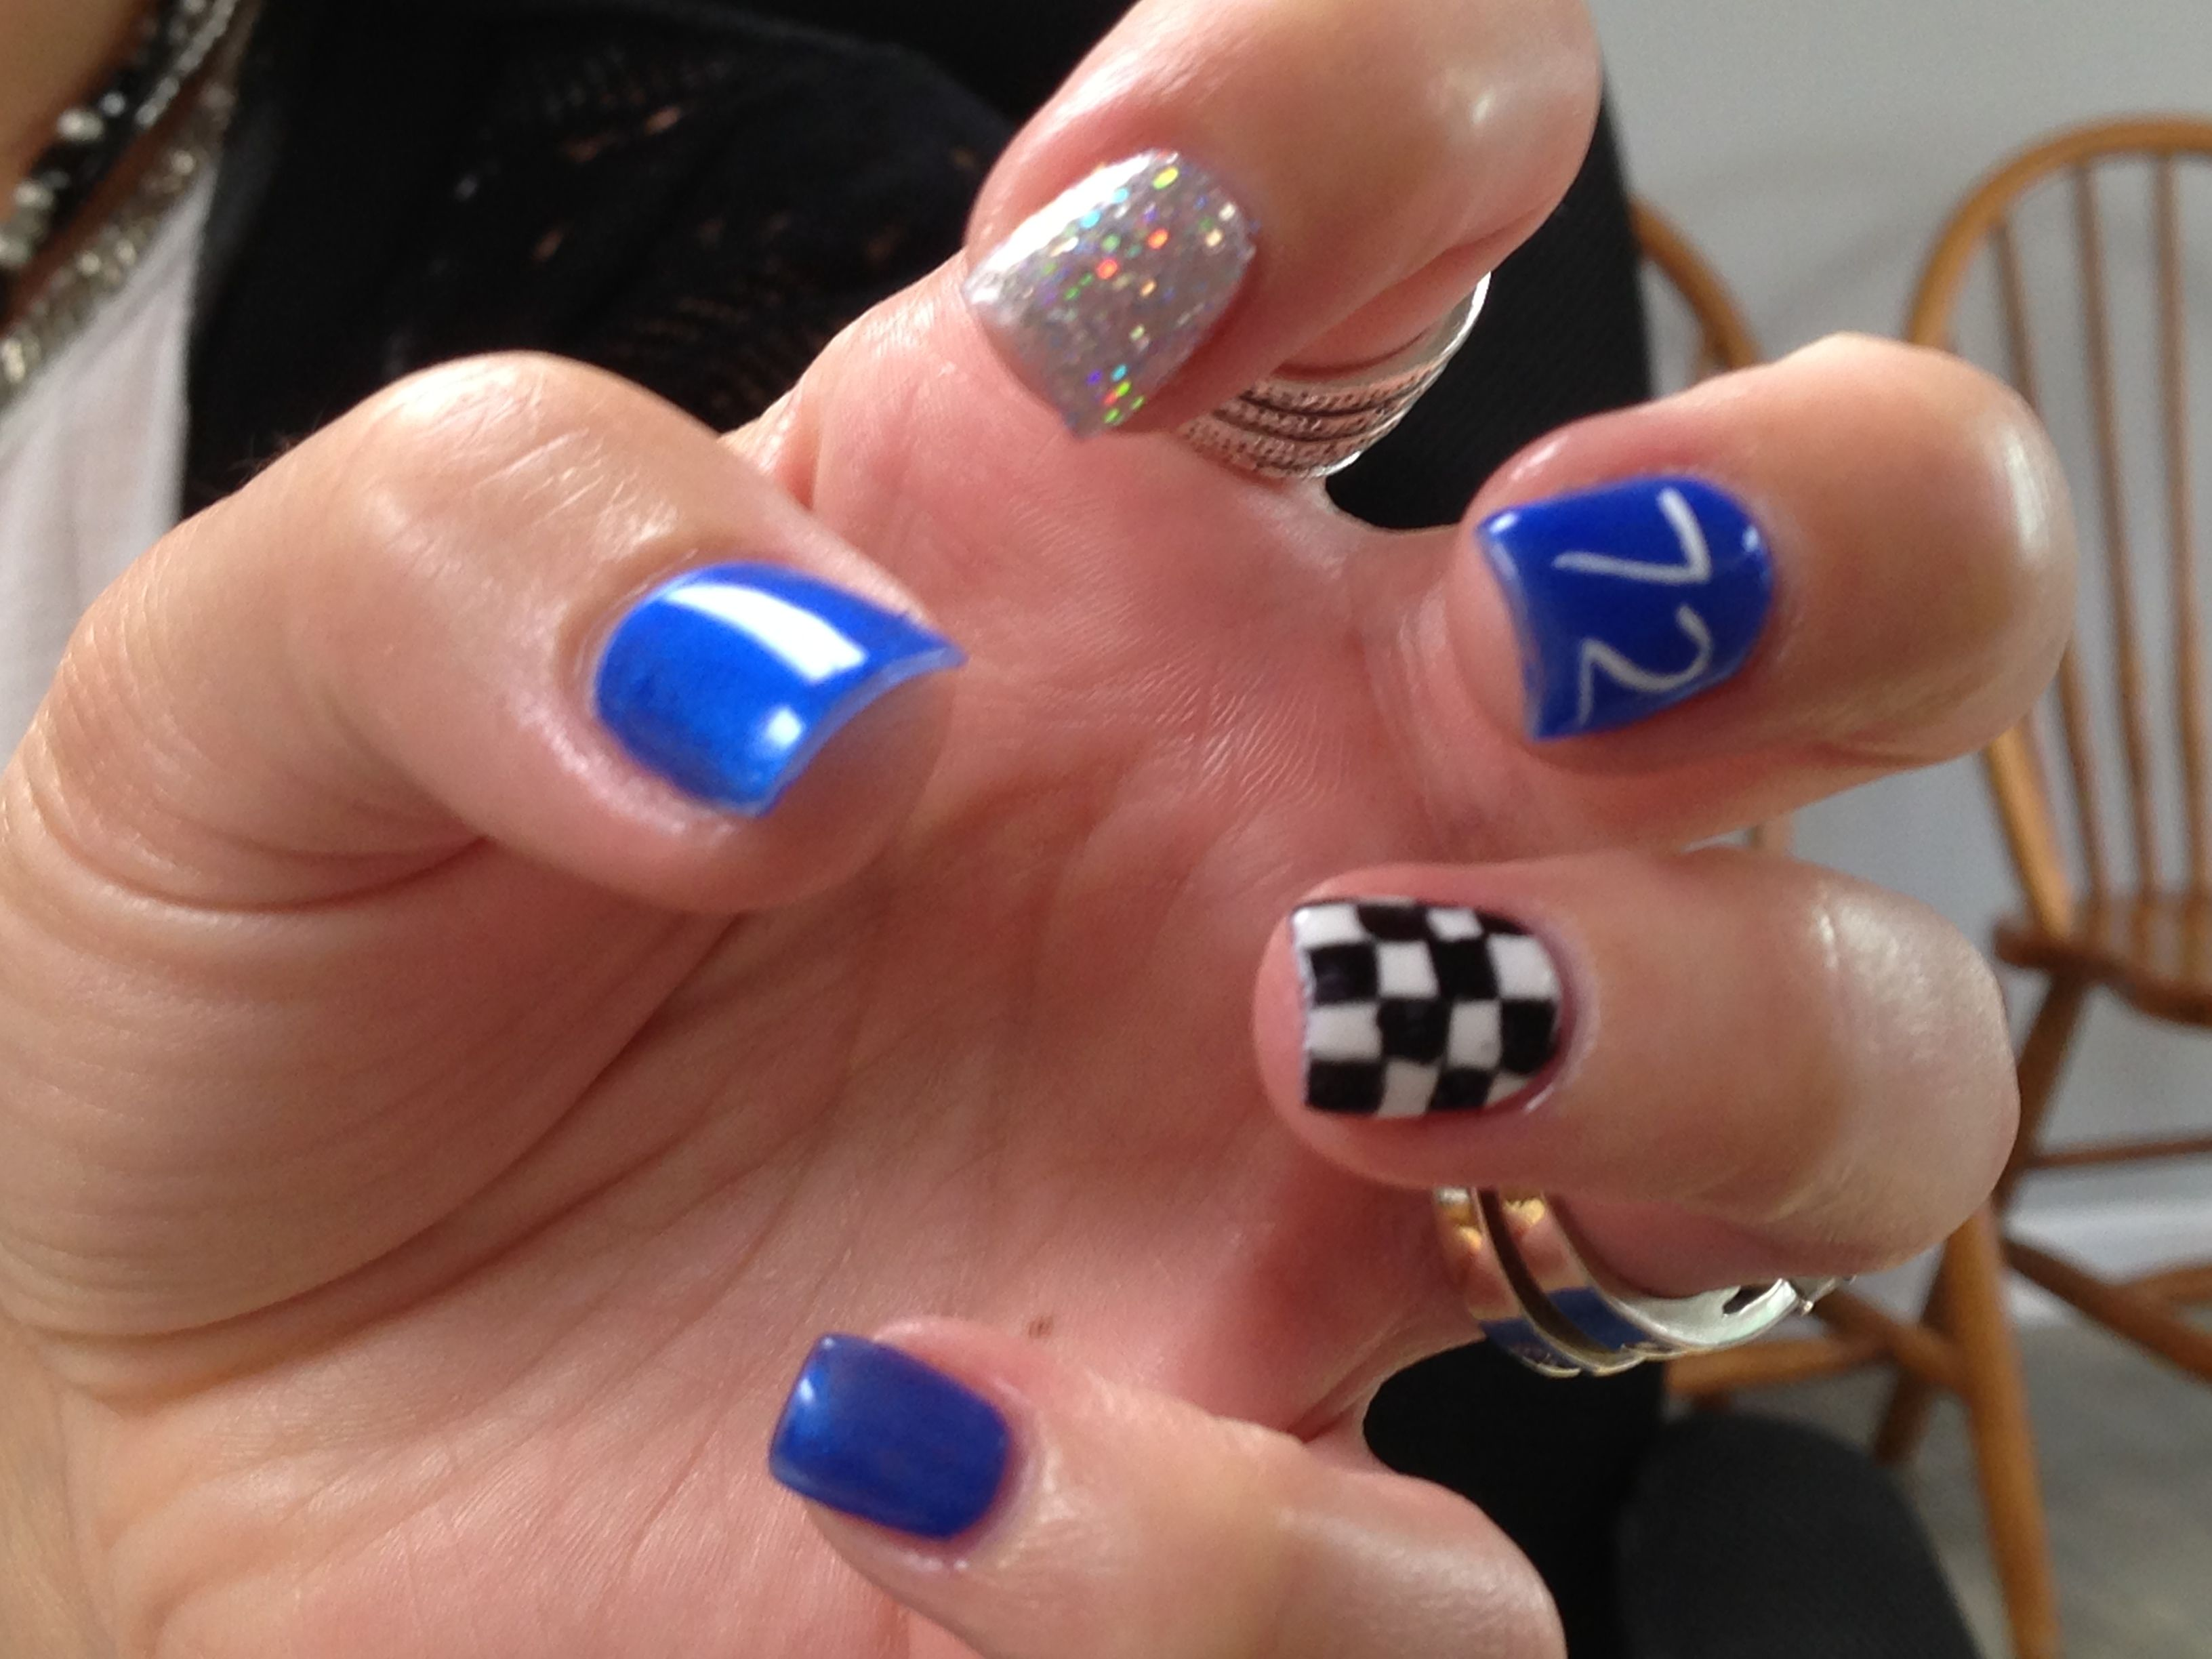 Racing Nail Designs Images - simple nail design ideas for beginners